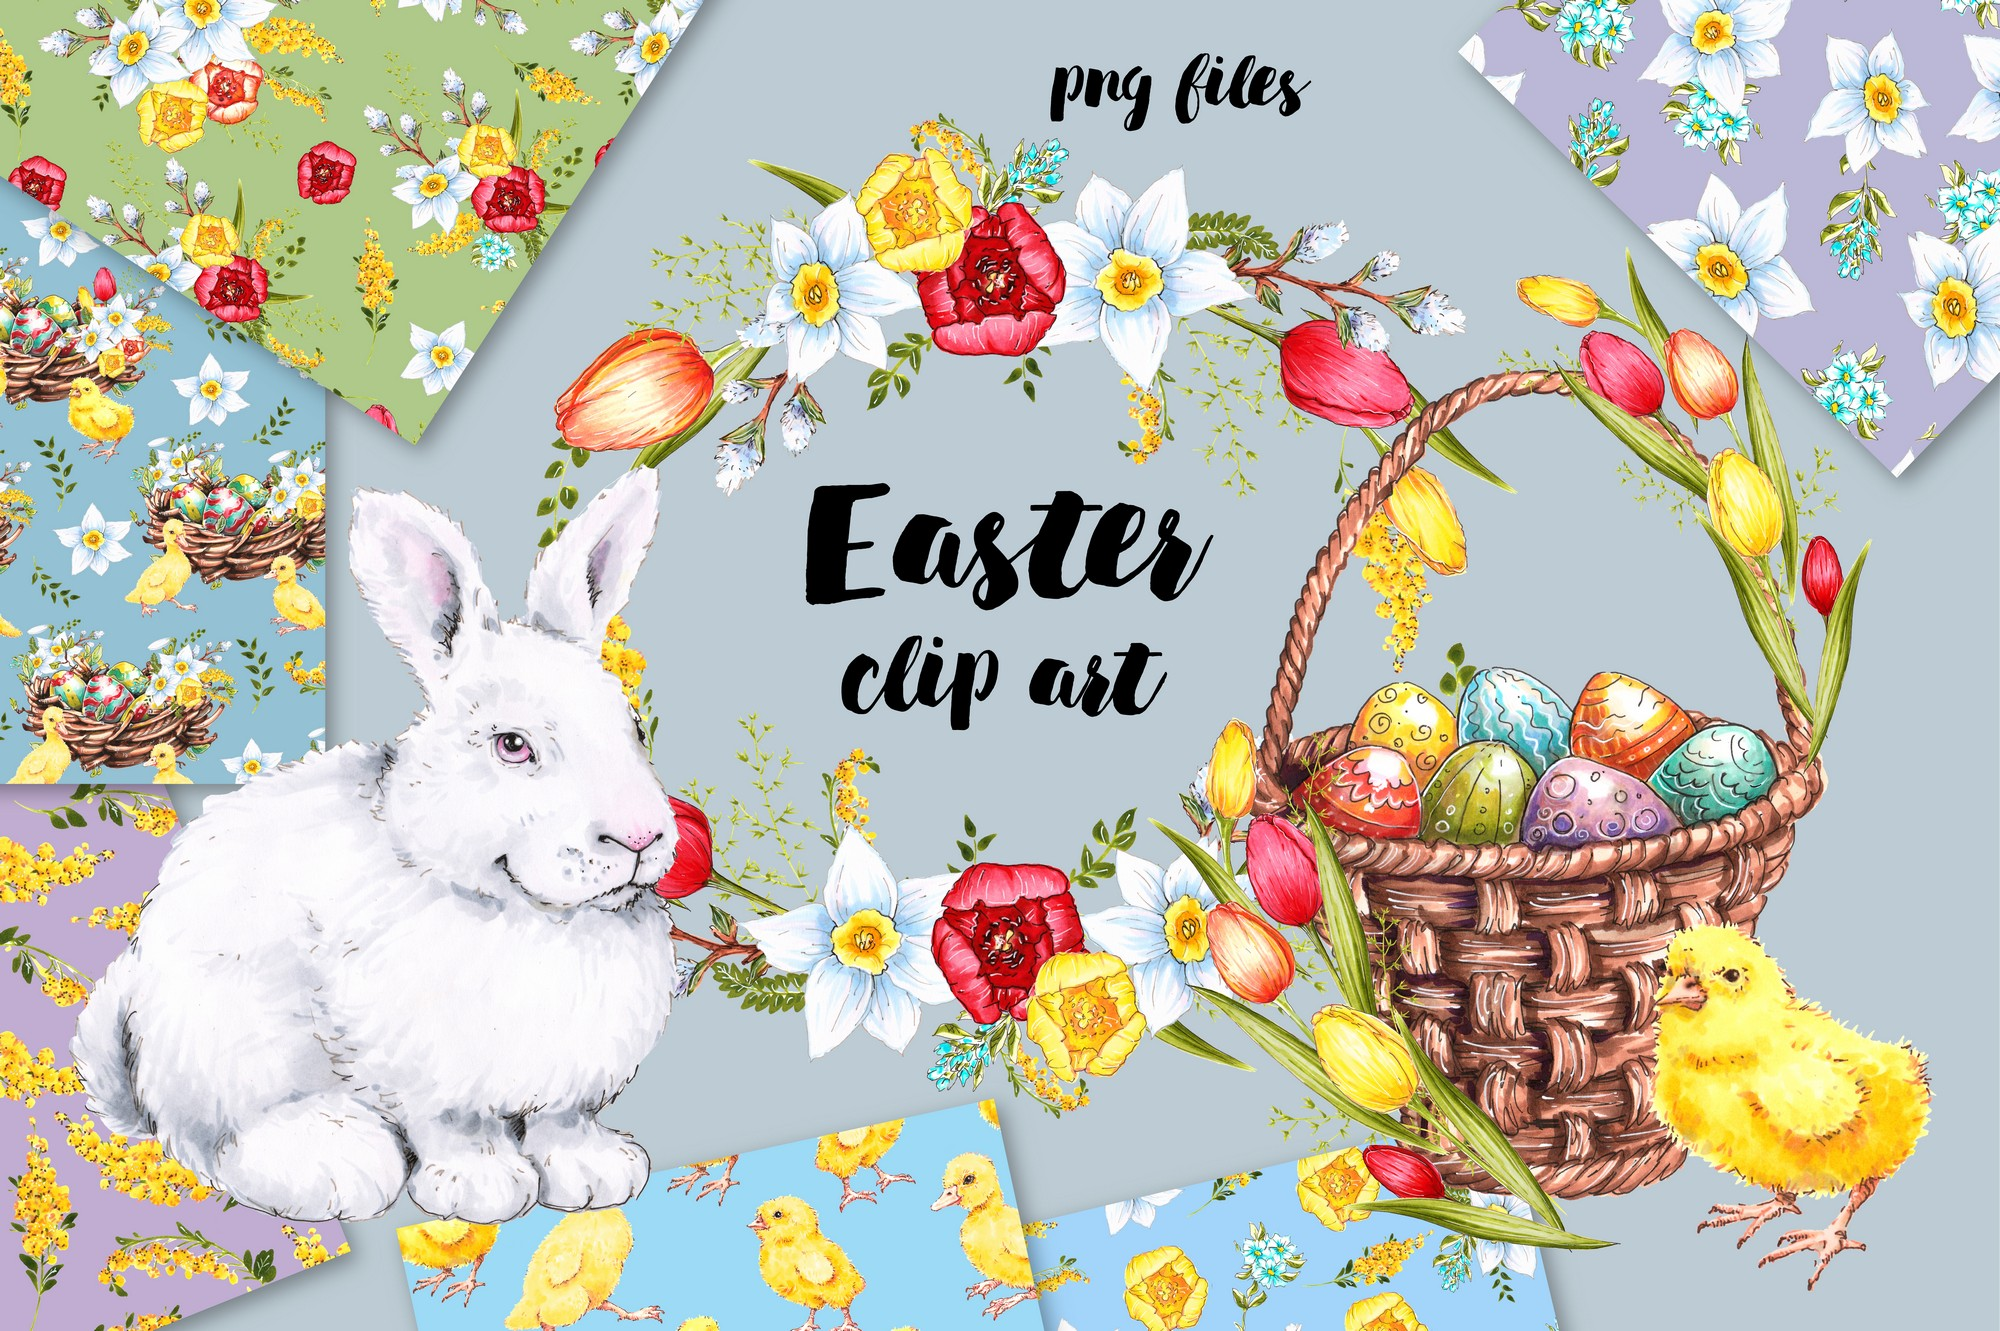 200+ Premium Easter Background in 2020: Free Vectors, Photos PSD files and Elements in Web Design - 1 7